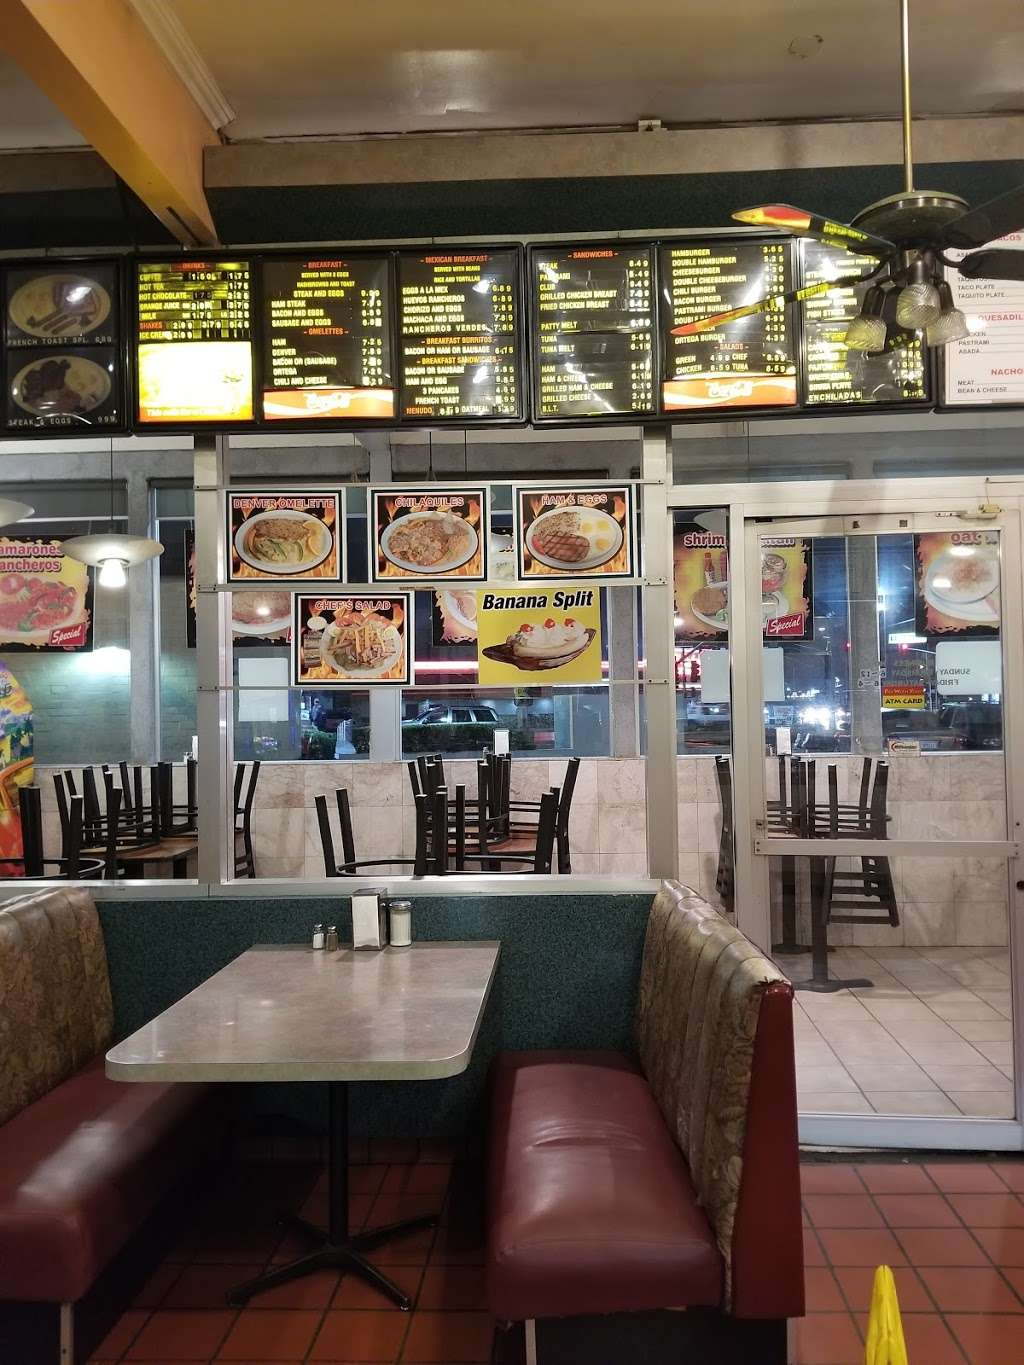 Sams Burgers - restaurant  | Photo 10 of 10 | Address: 8505 Telegraph Rd, Pico Rivera, CA 90660, USA | Phone: (562) 869-1482